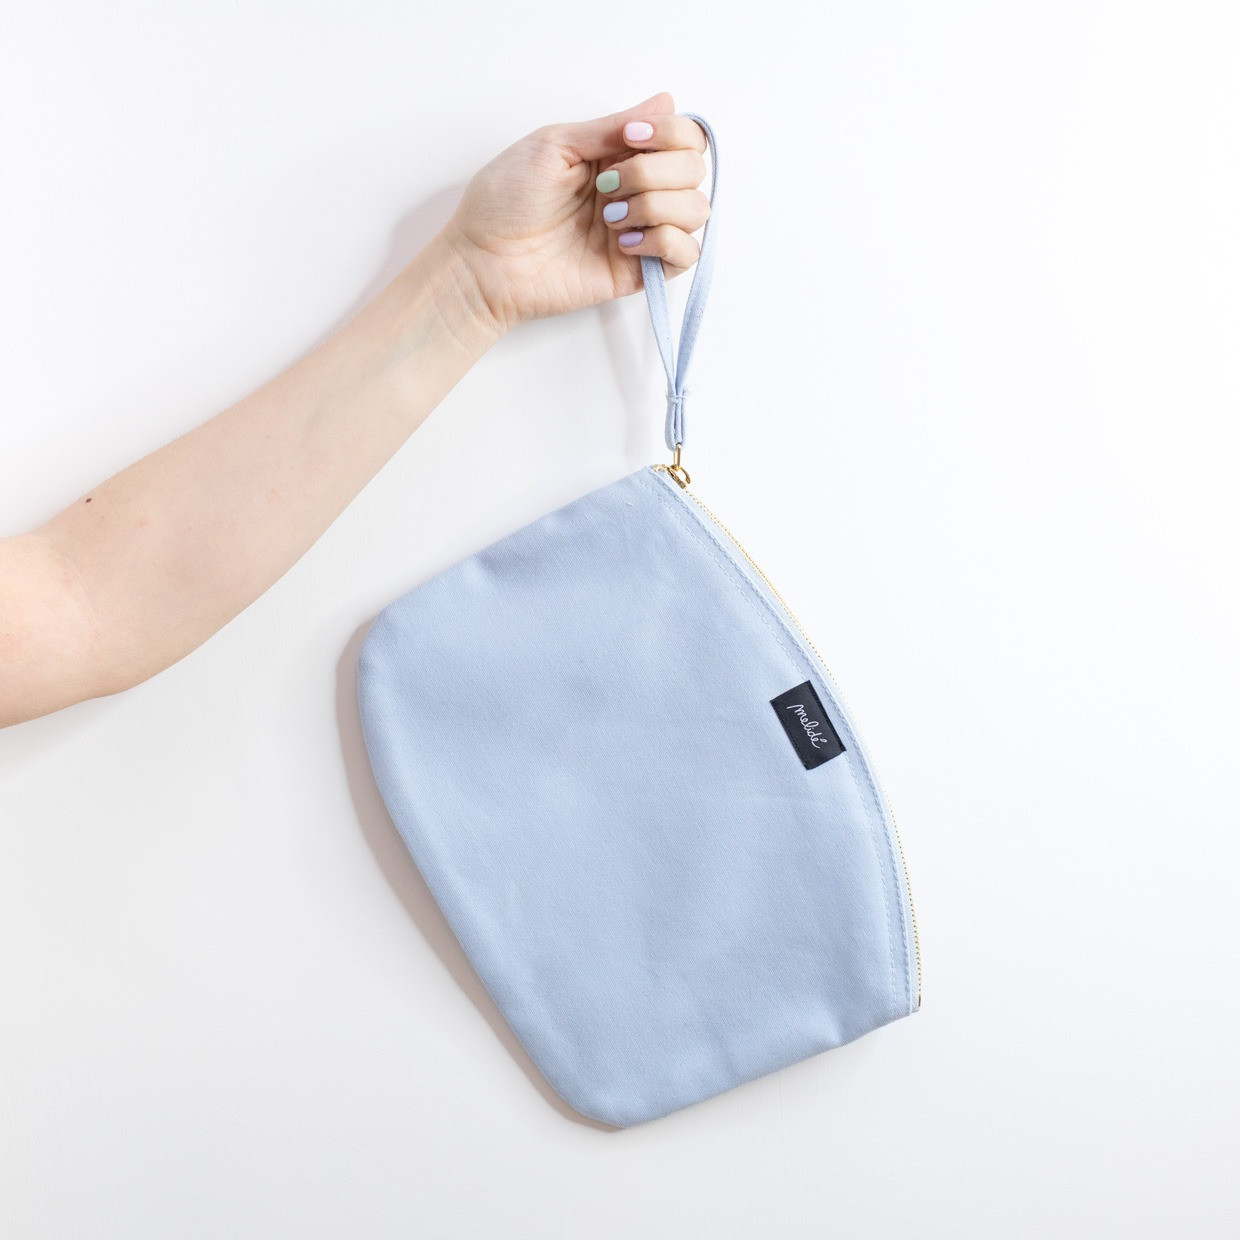 The ZIPPED POUCH l - Vergine